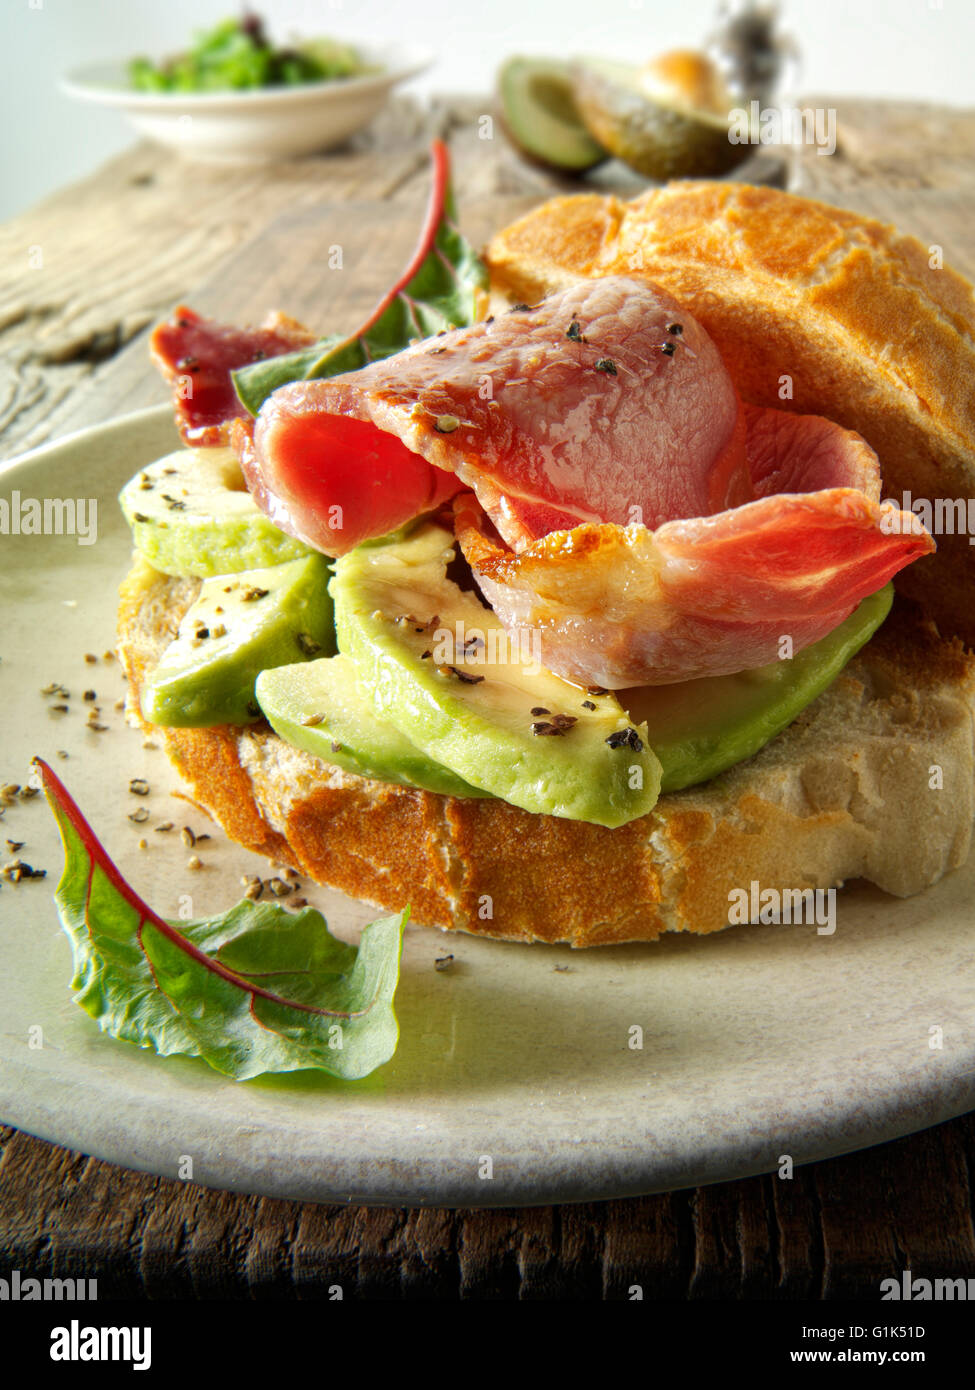 Prepared bacon and avocado sandwich in white bread on a plate - Stock Image